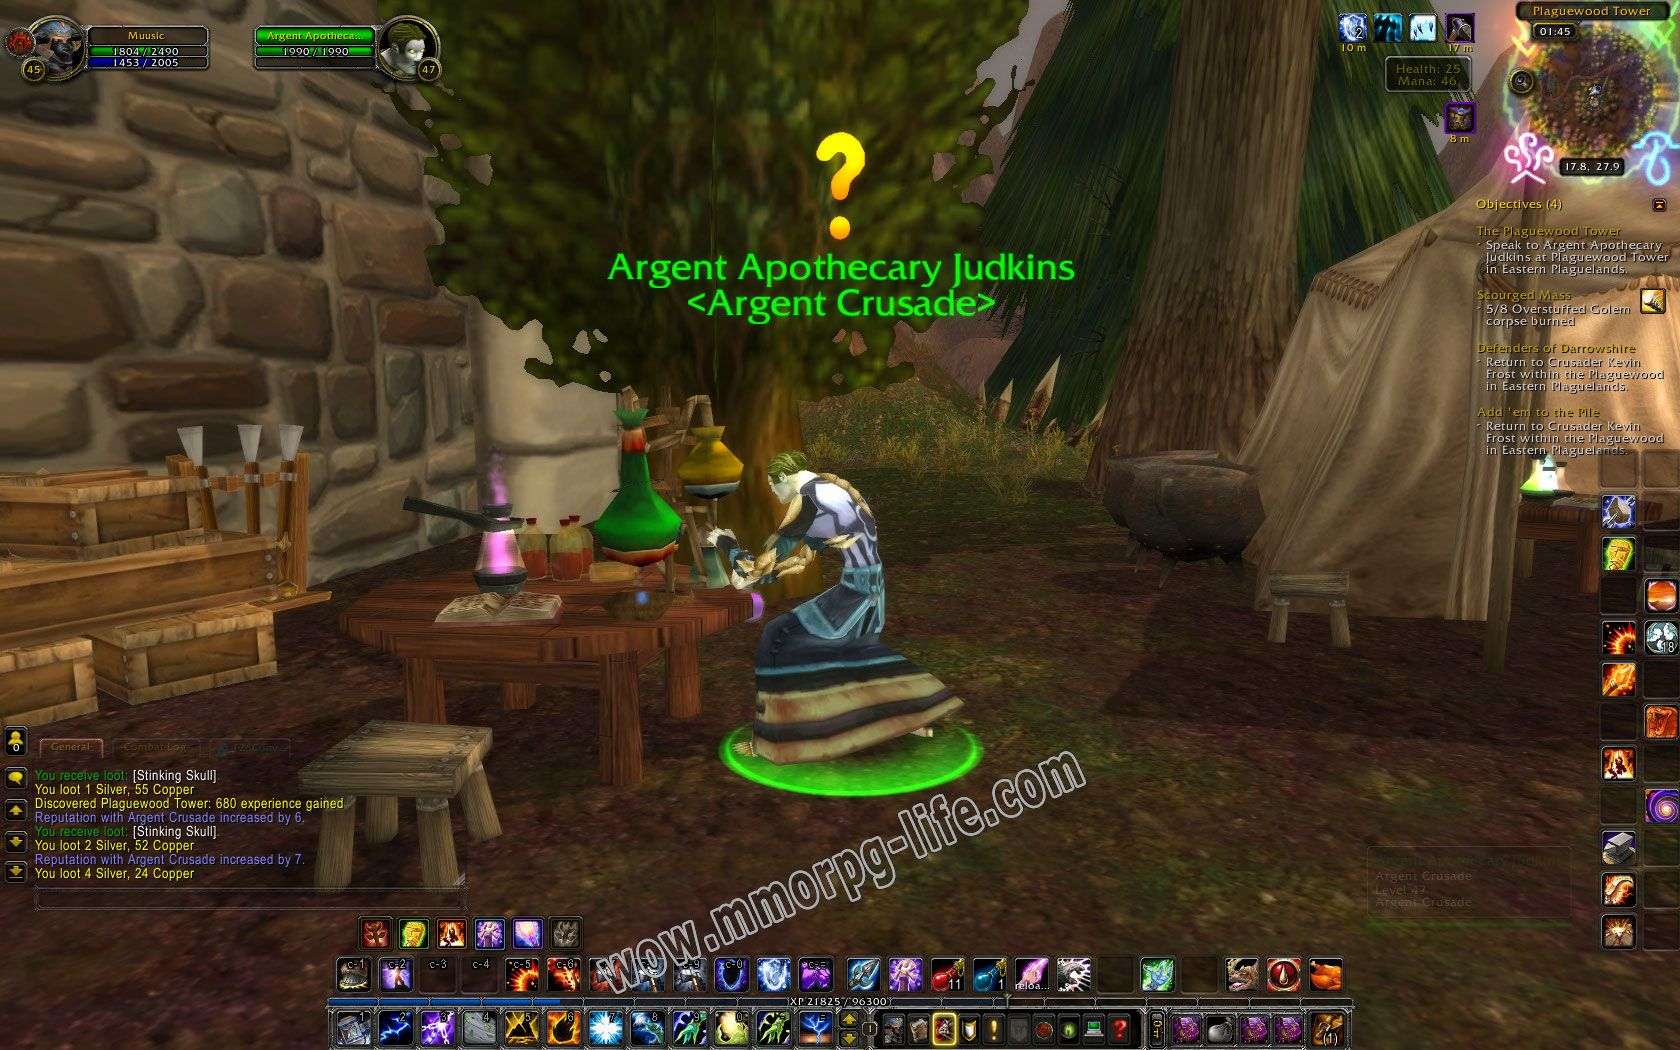 NPC: Argent Apothecary Judkins image 2 middle size